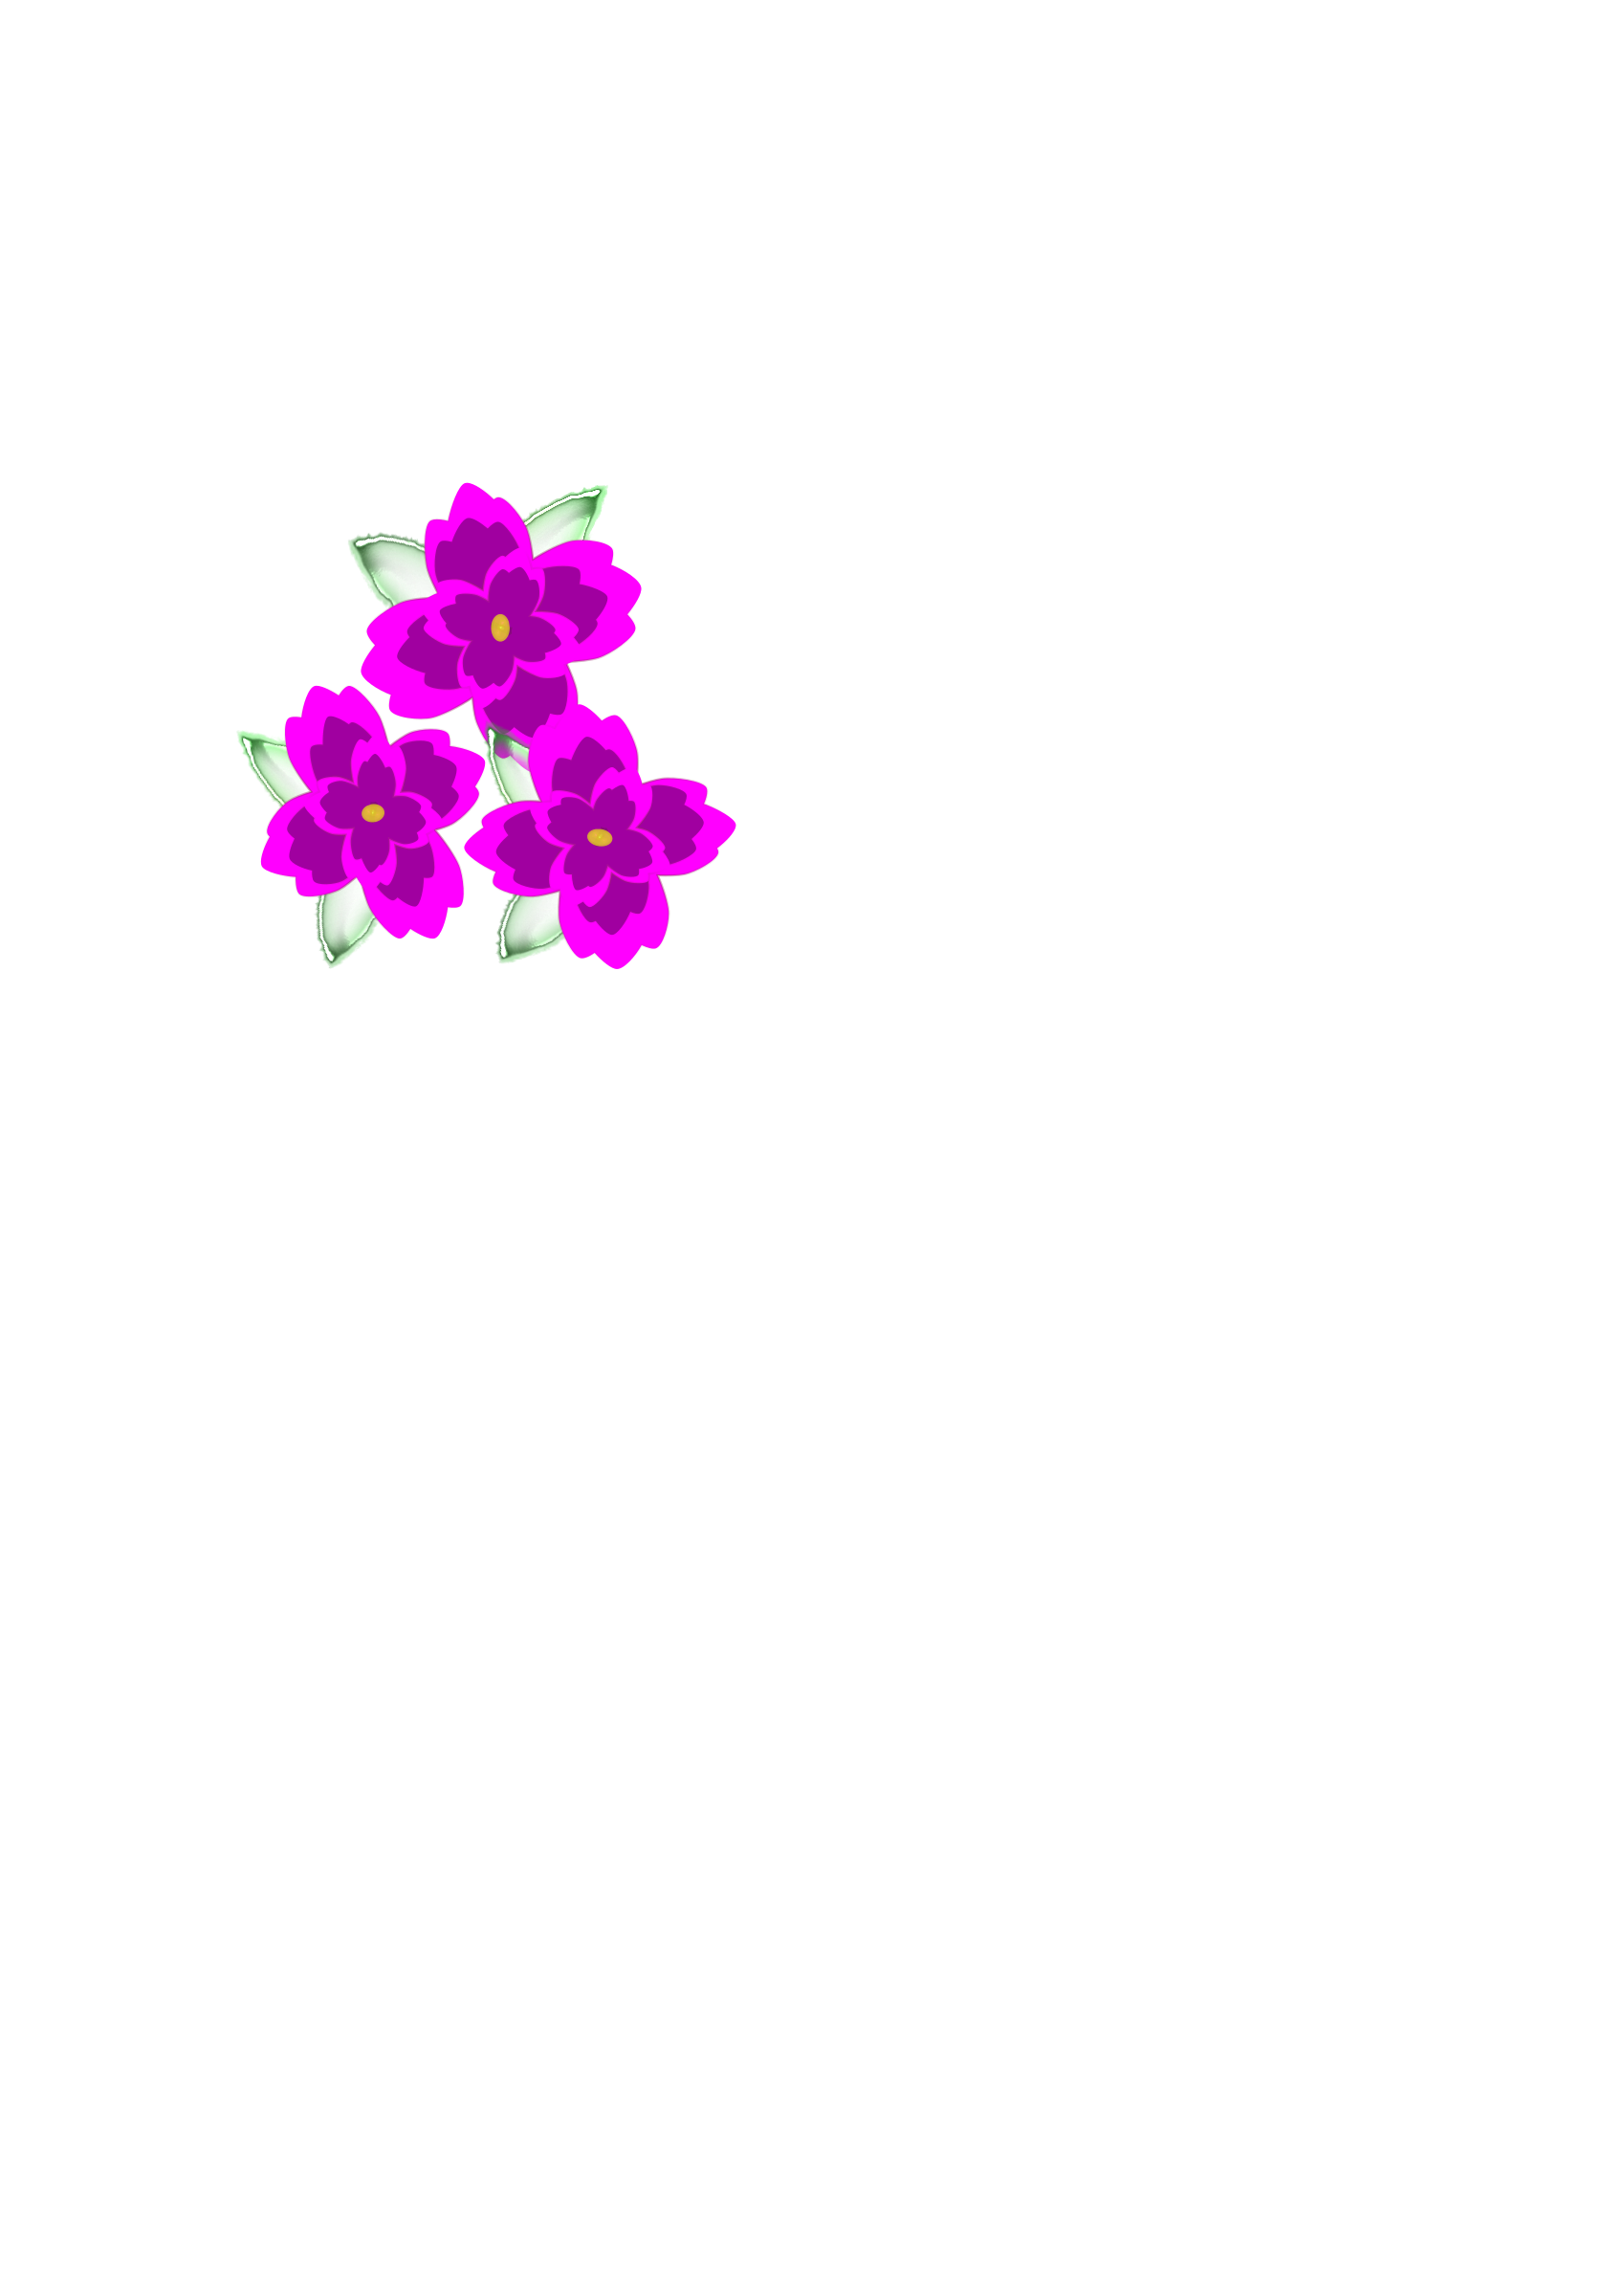 Small flowers png. Clipart flower big image